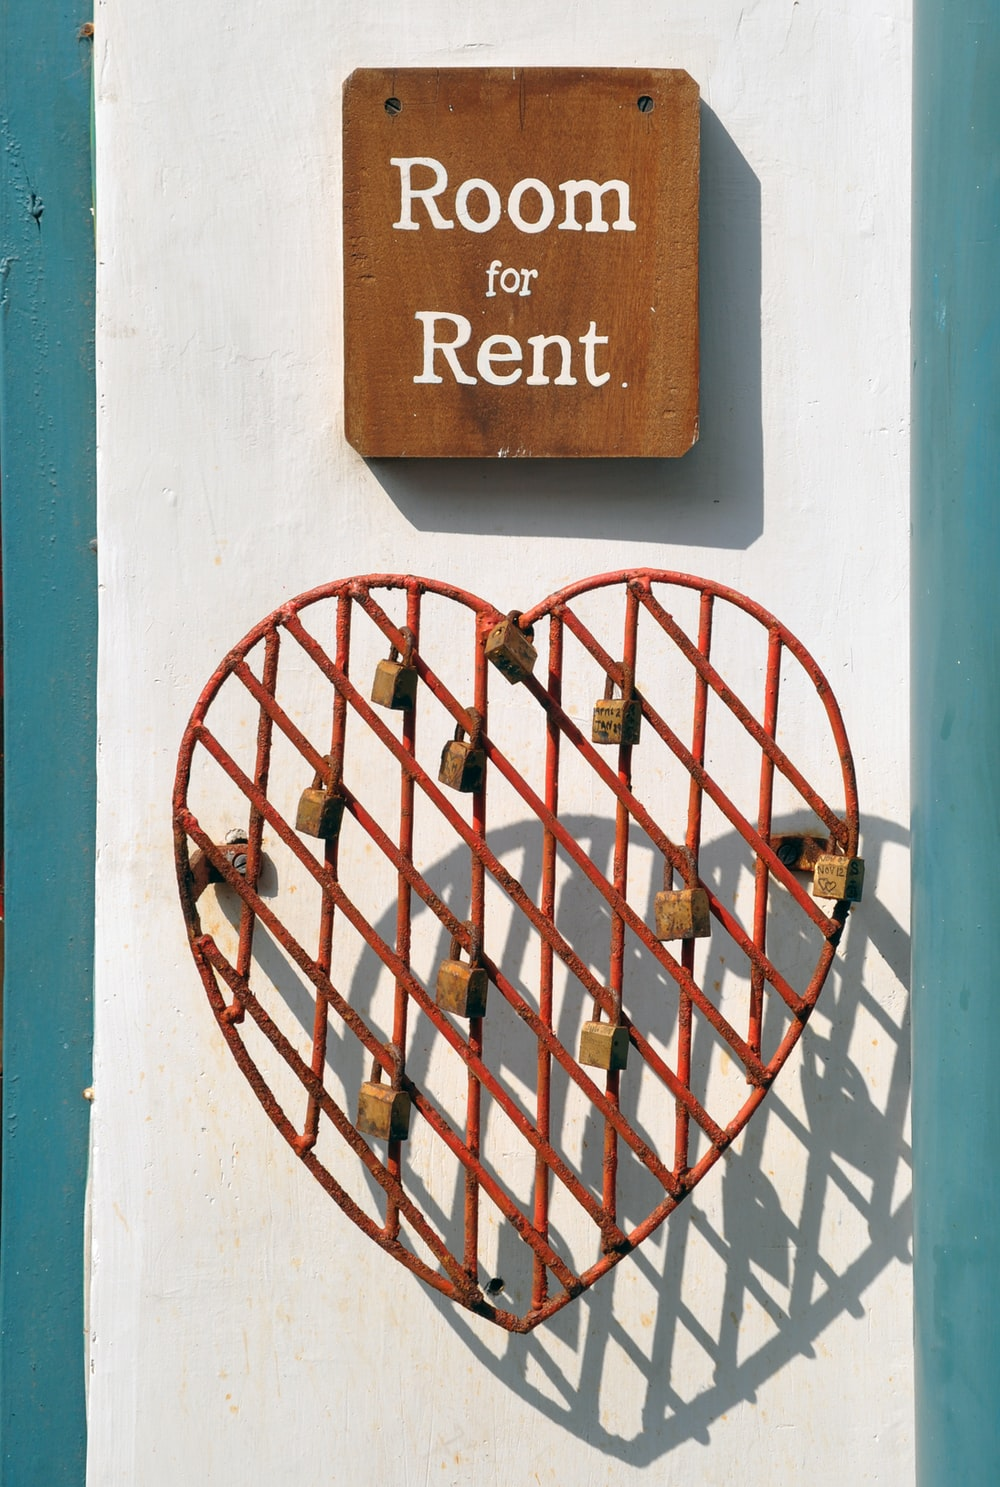 closeup photo of room for rent sign